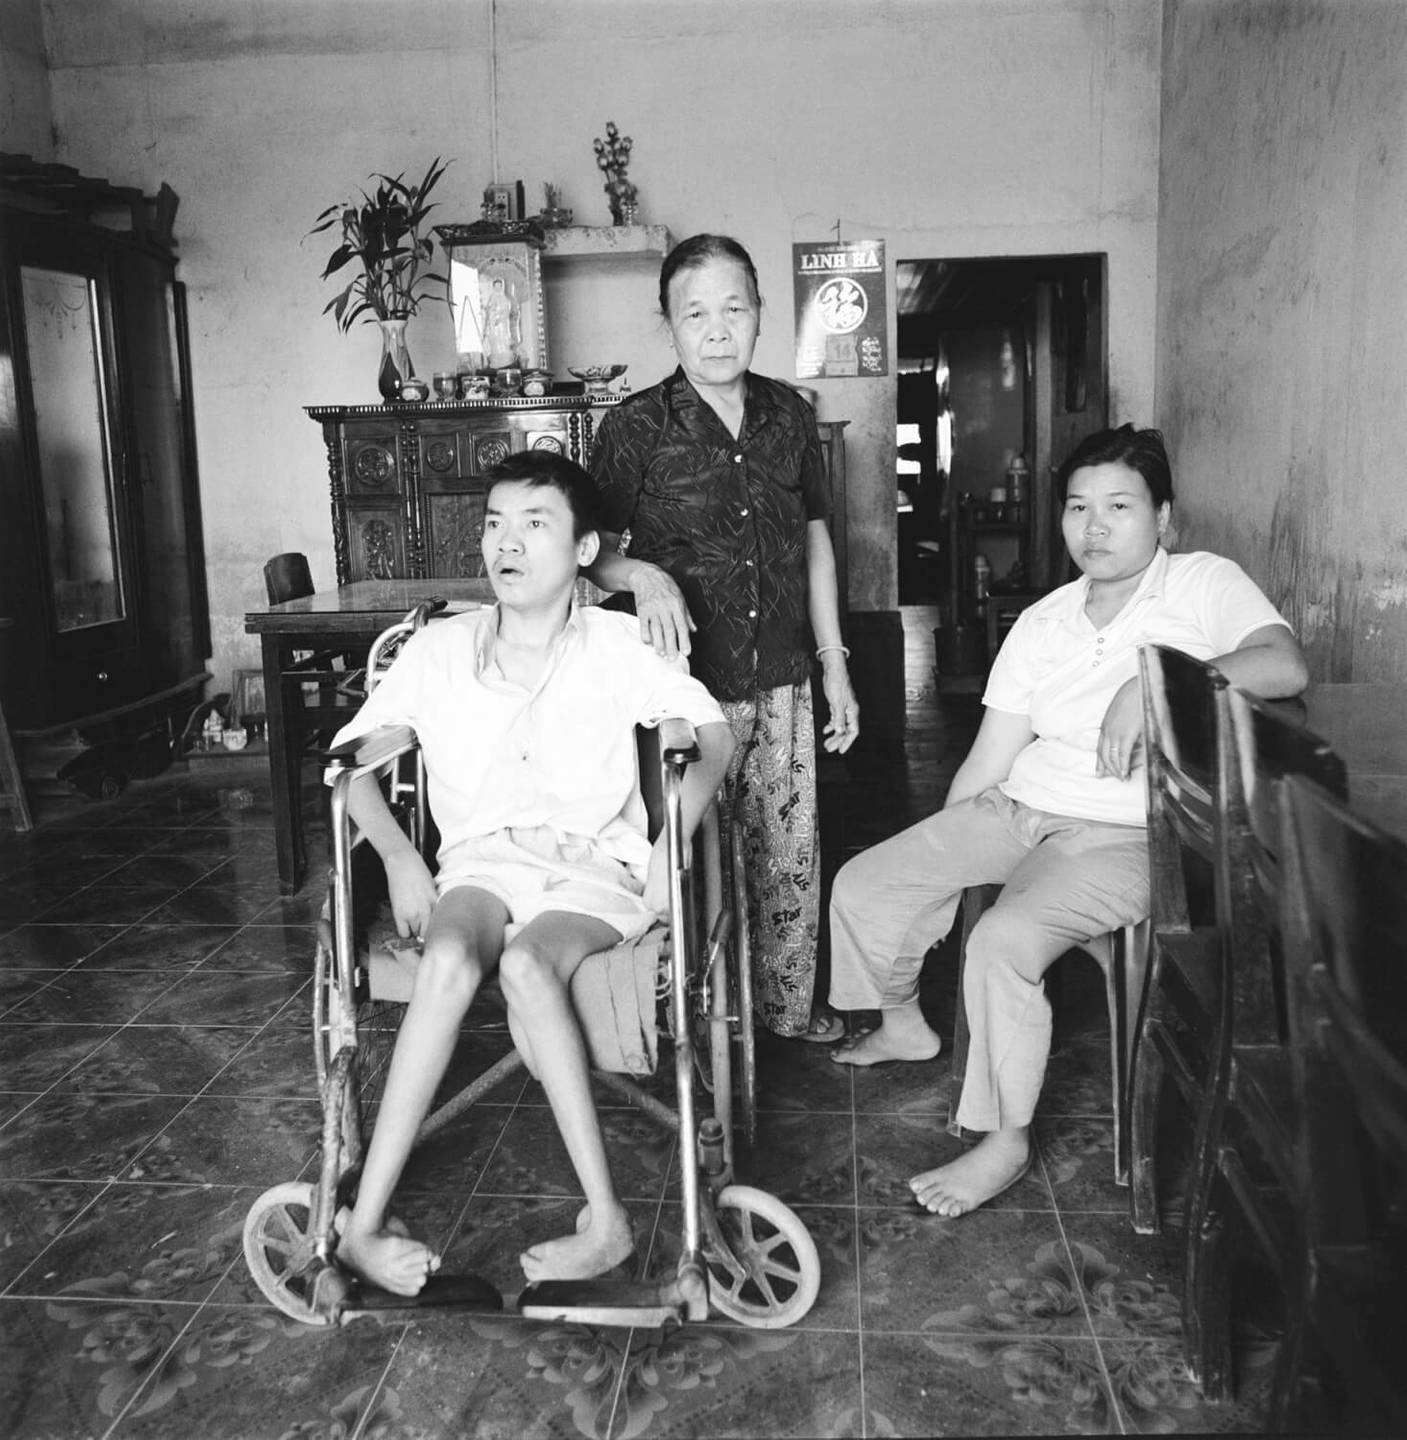 A deformed Asian man in a wheelchair with two Asian woman attending nearby.